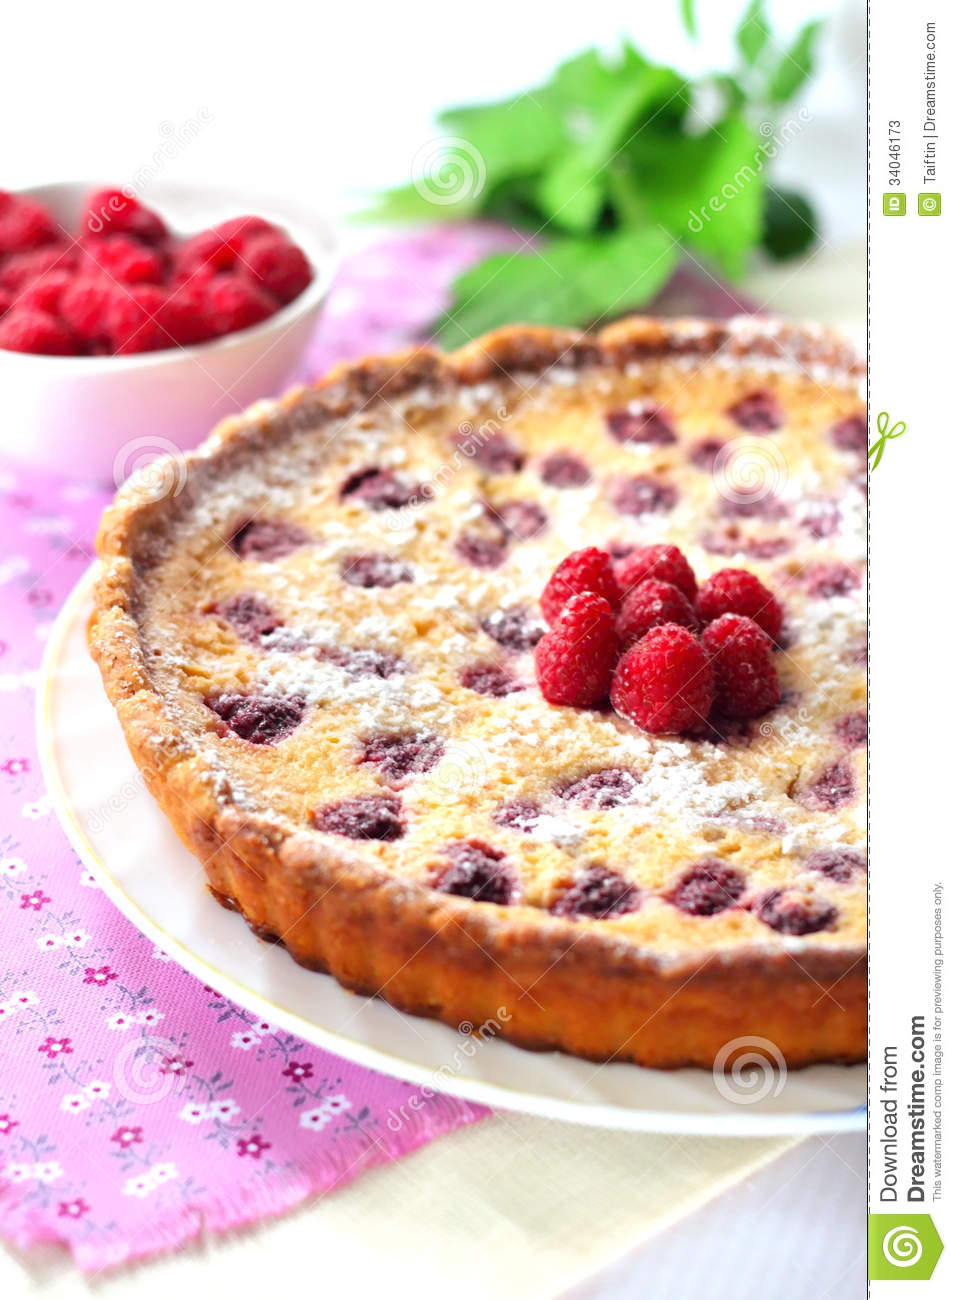 Download Almond Tart With Raspberries Stock Image - Image of tart, gastronomy: 34046173